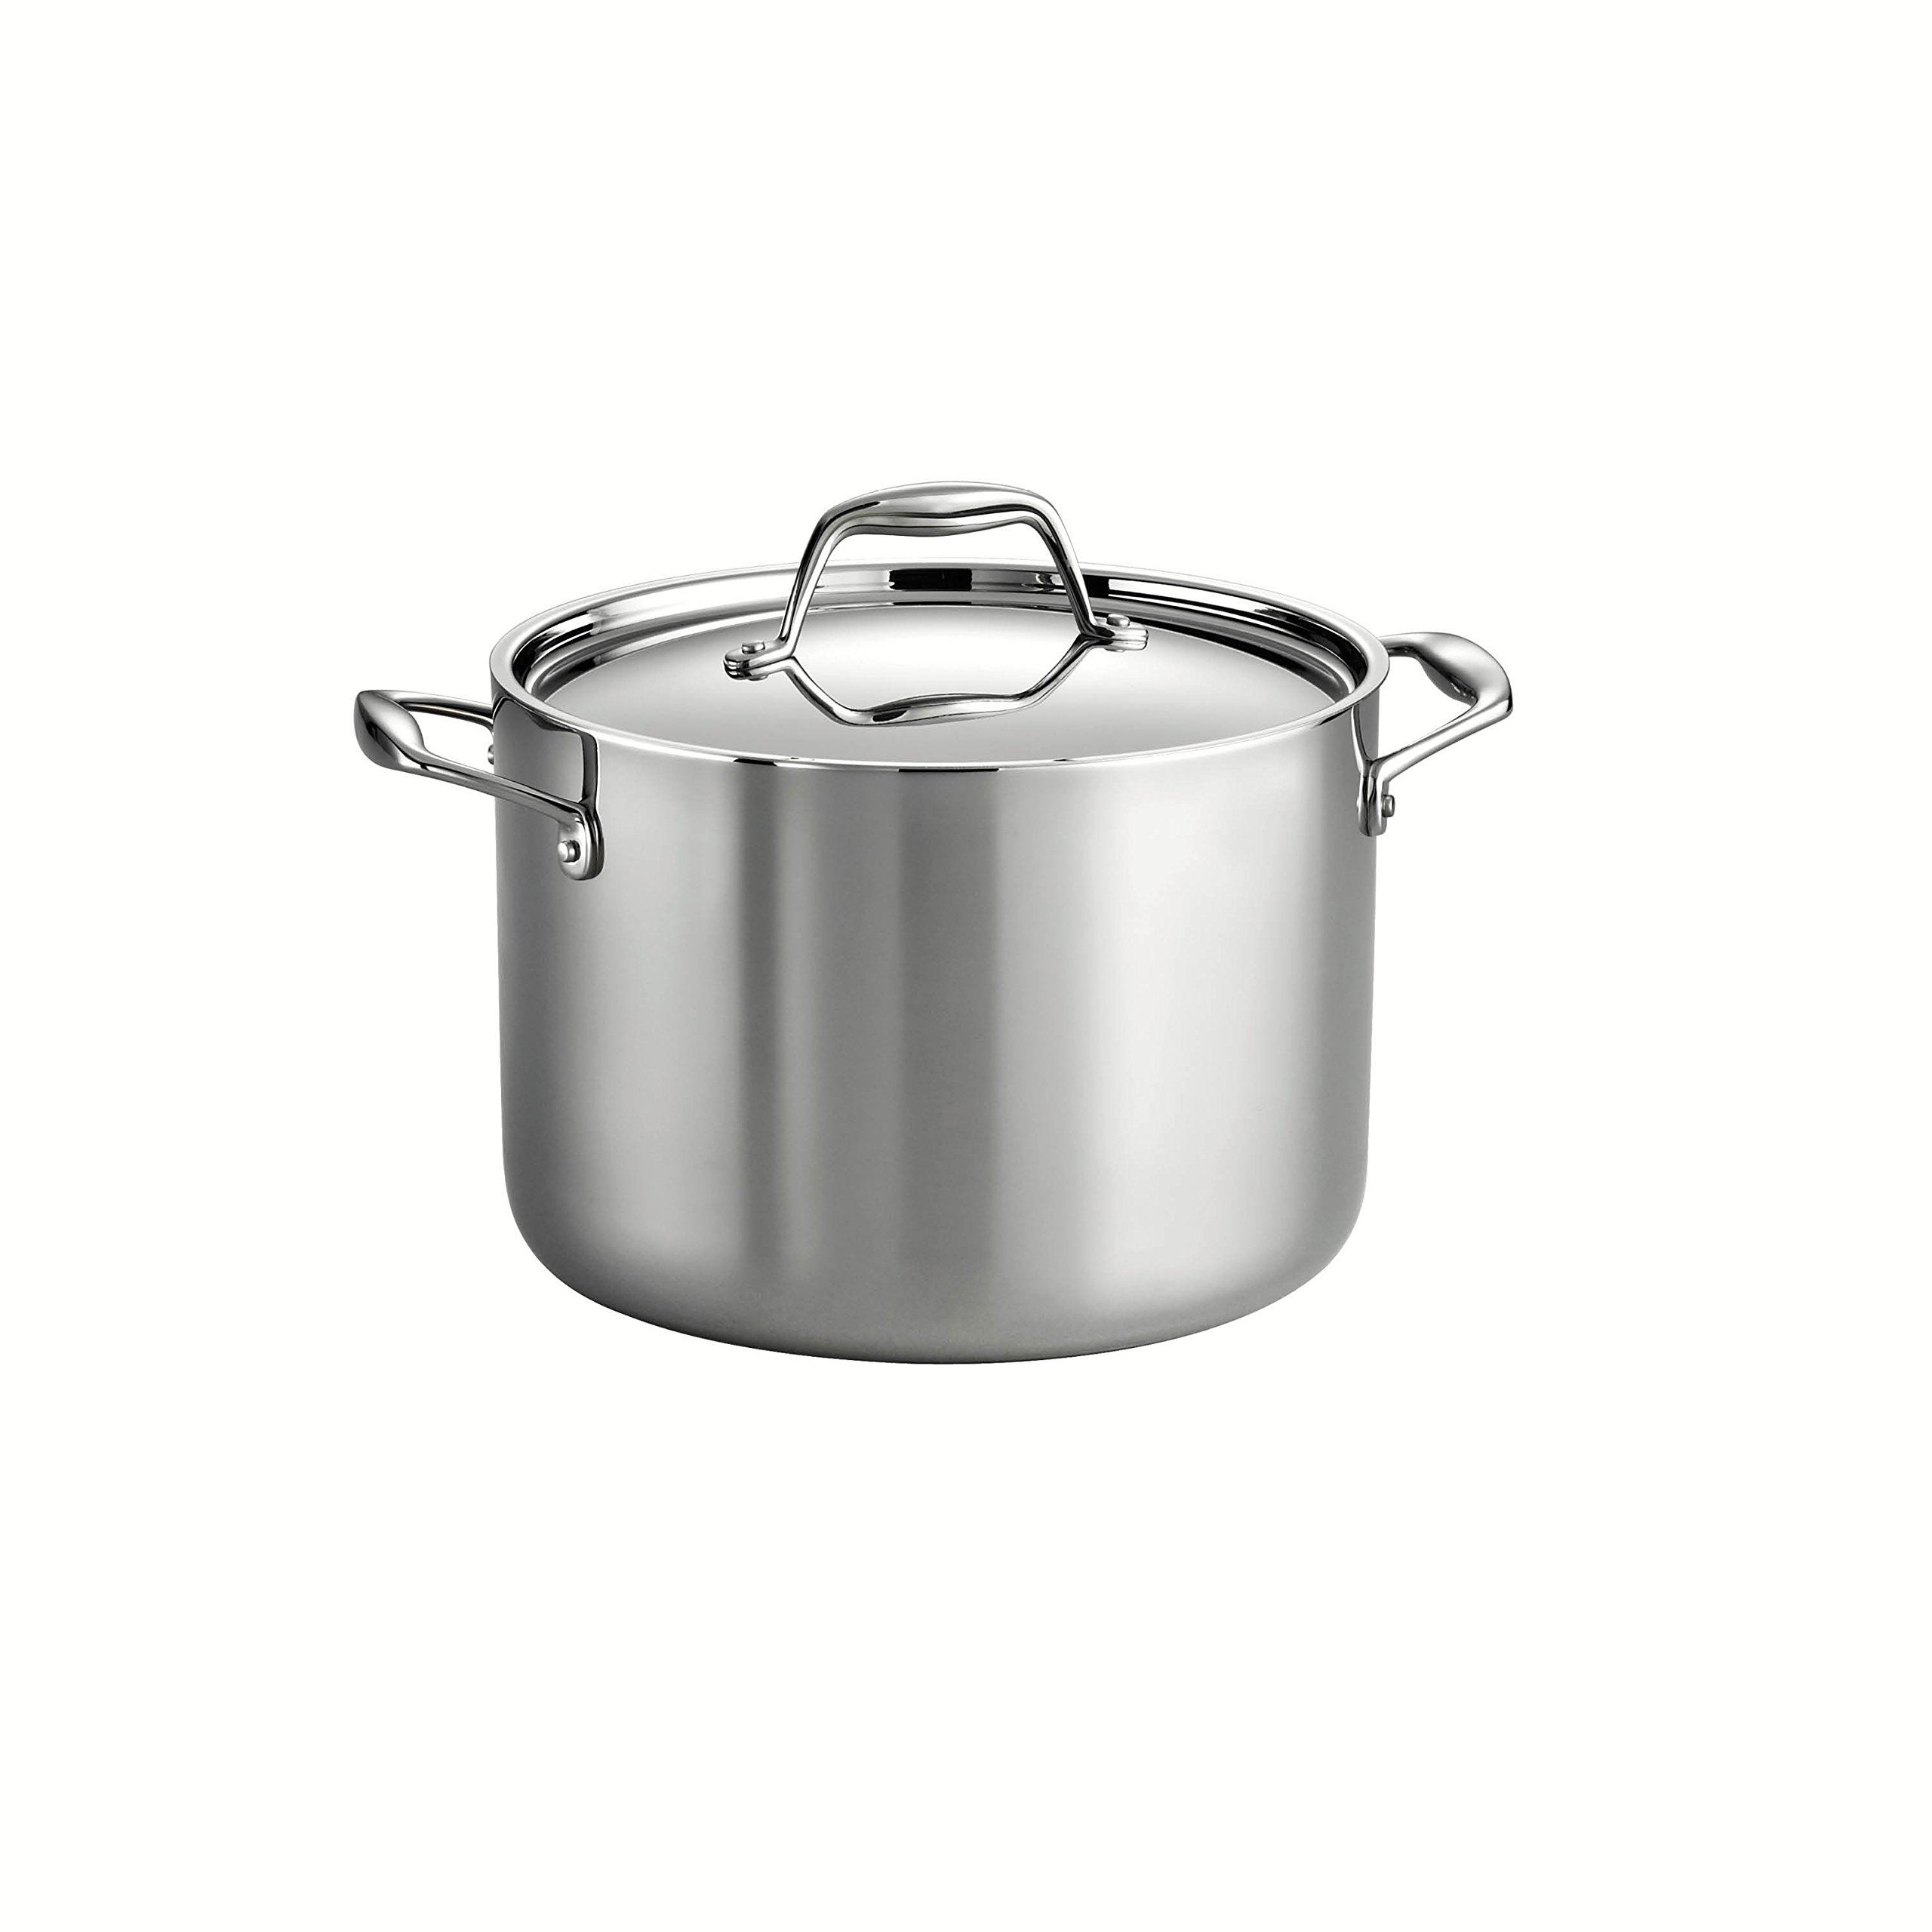 Tramontina 80116/041DS Gourmet 18/10 Stainless Steel Induction-Ready Tri-Ply Clad Covered Stock Pot, 8-Quart, NSF-Certified, Made in Brazil